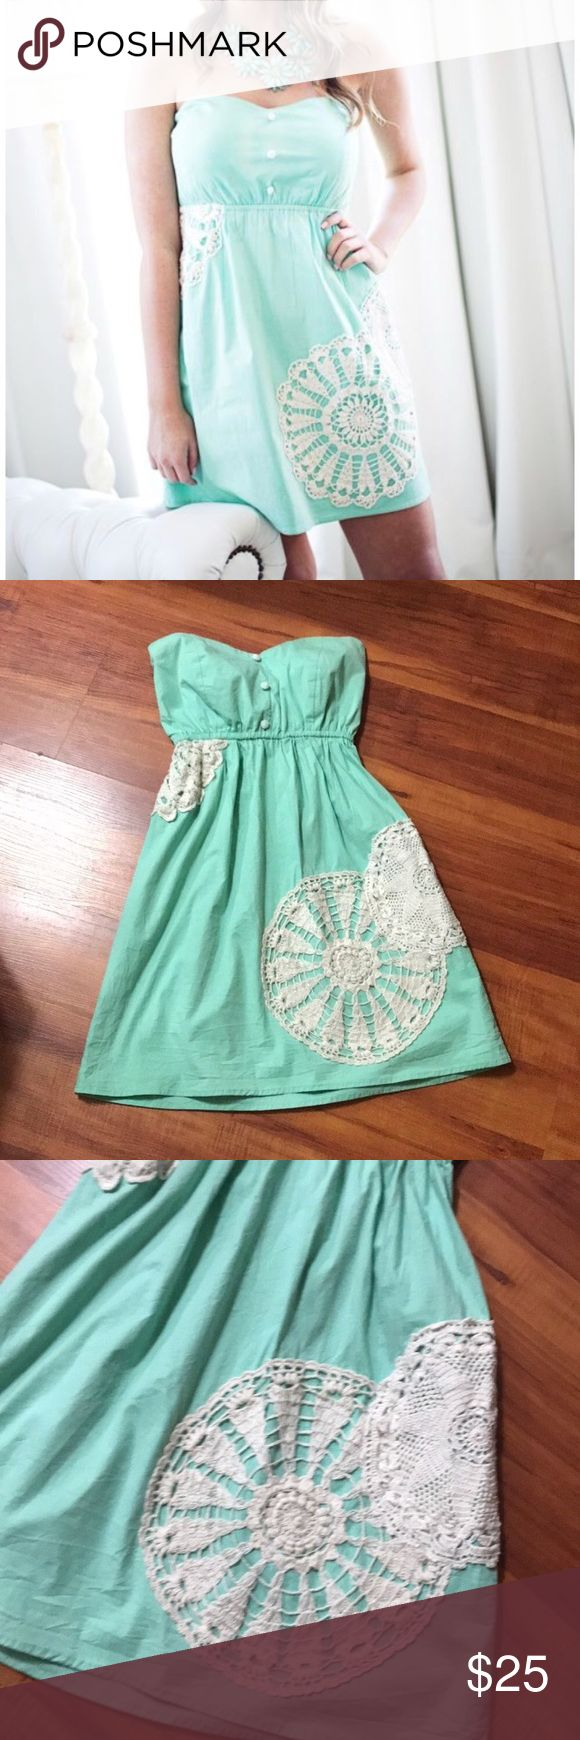 Judith March mint Strapless Dress Euc Small Judith March mint strapless dress with white/cream crochet designs in good used condition. No size tag so please look at the measurements: waist- 11 but stretches to 16 inches, length- 26.5 inches. Elastic waistline and ruching at the back. In my opinion, it would best fit an extra small/ small. Judith March Dresses Mini